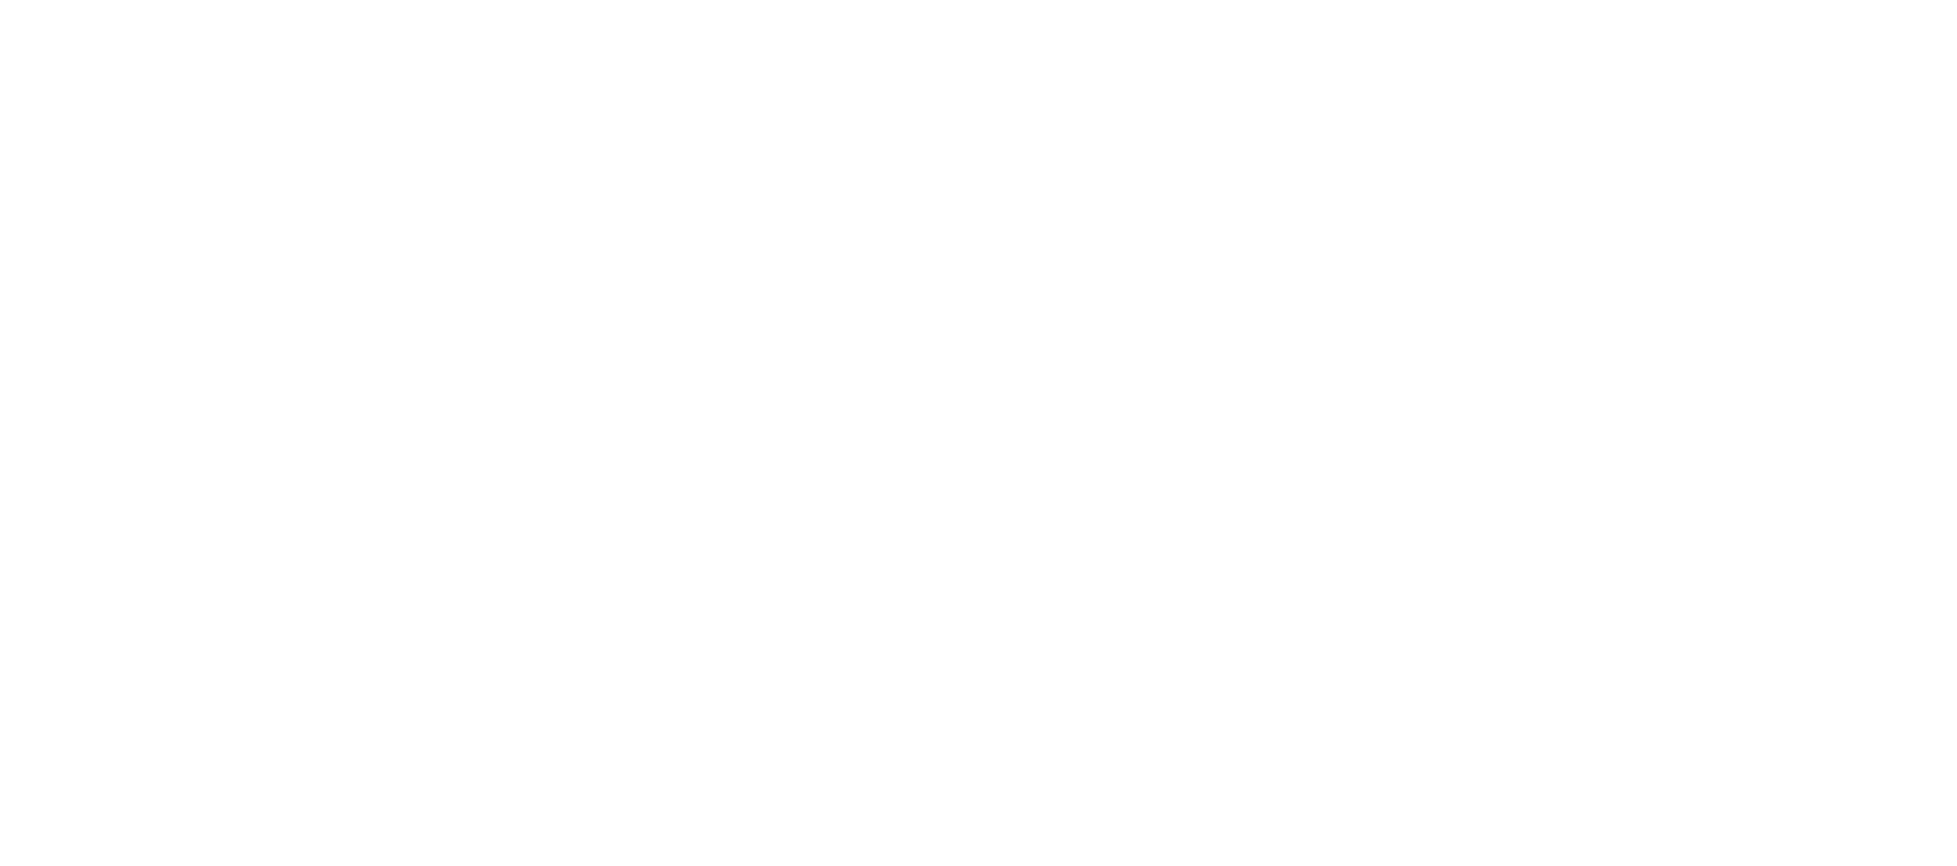 Mindful Occupational Therapy